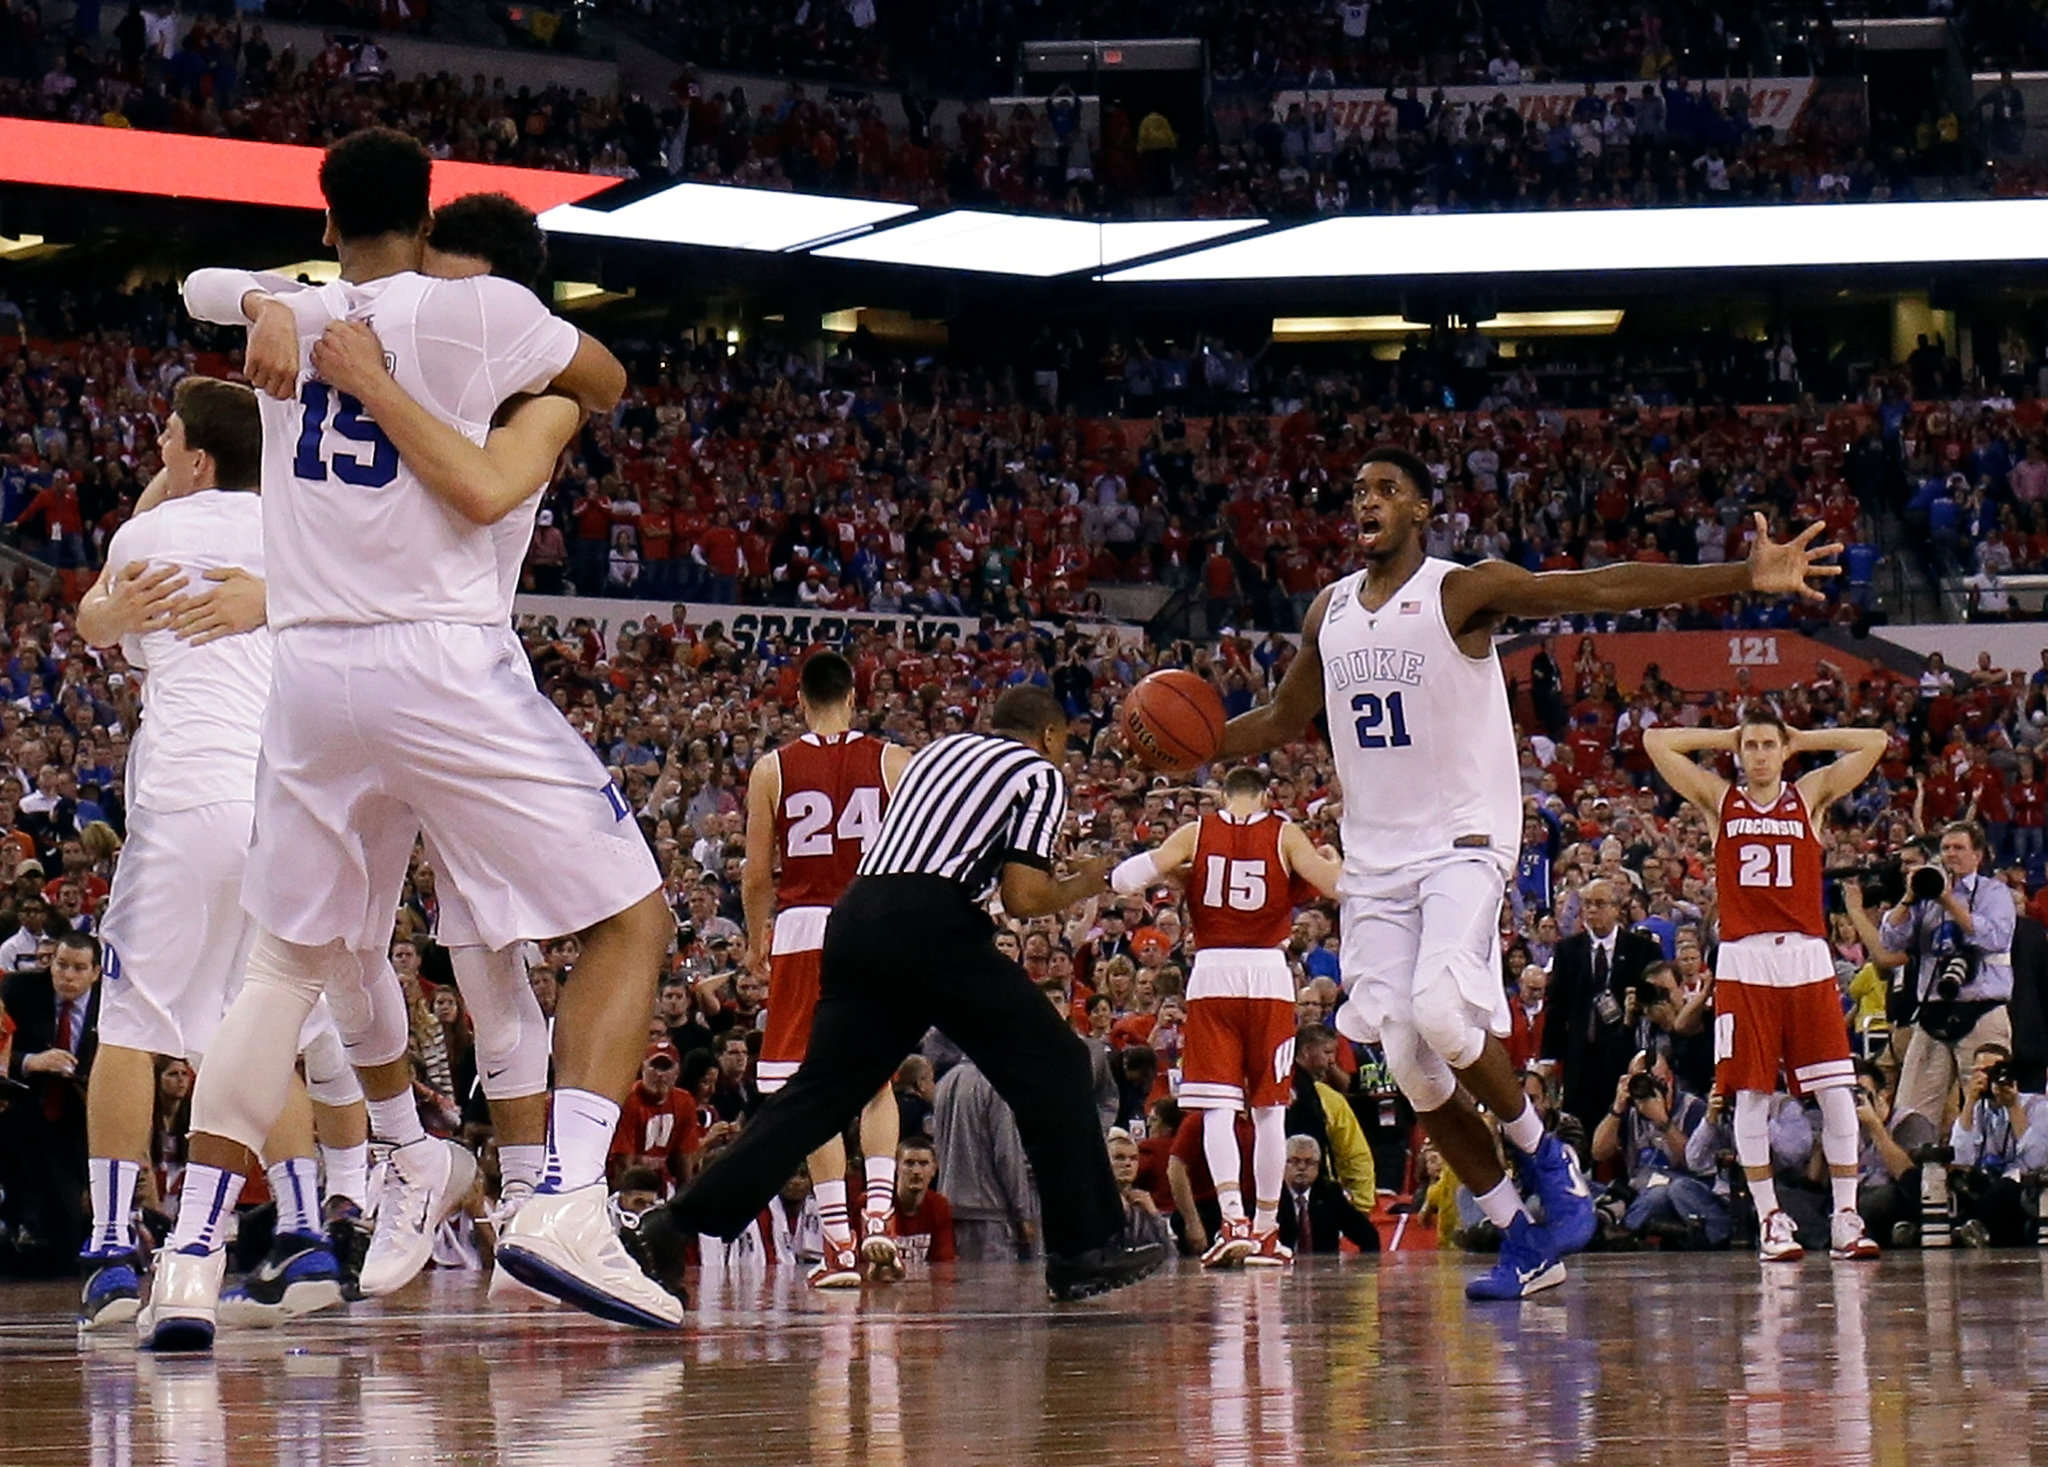 duke defeats wisconsin to win ncaa mens basketball championship new york times